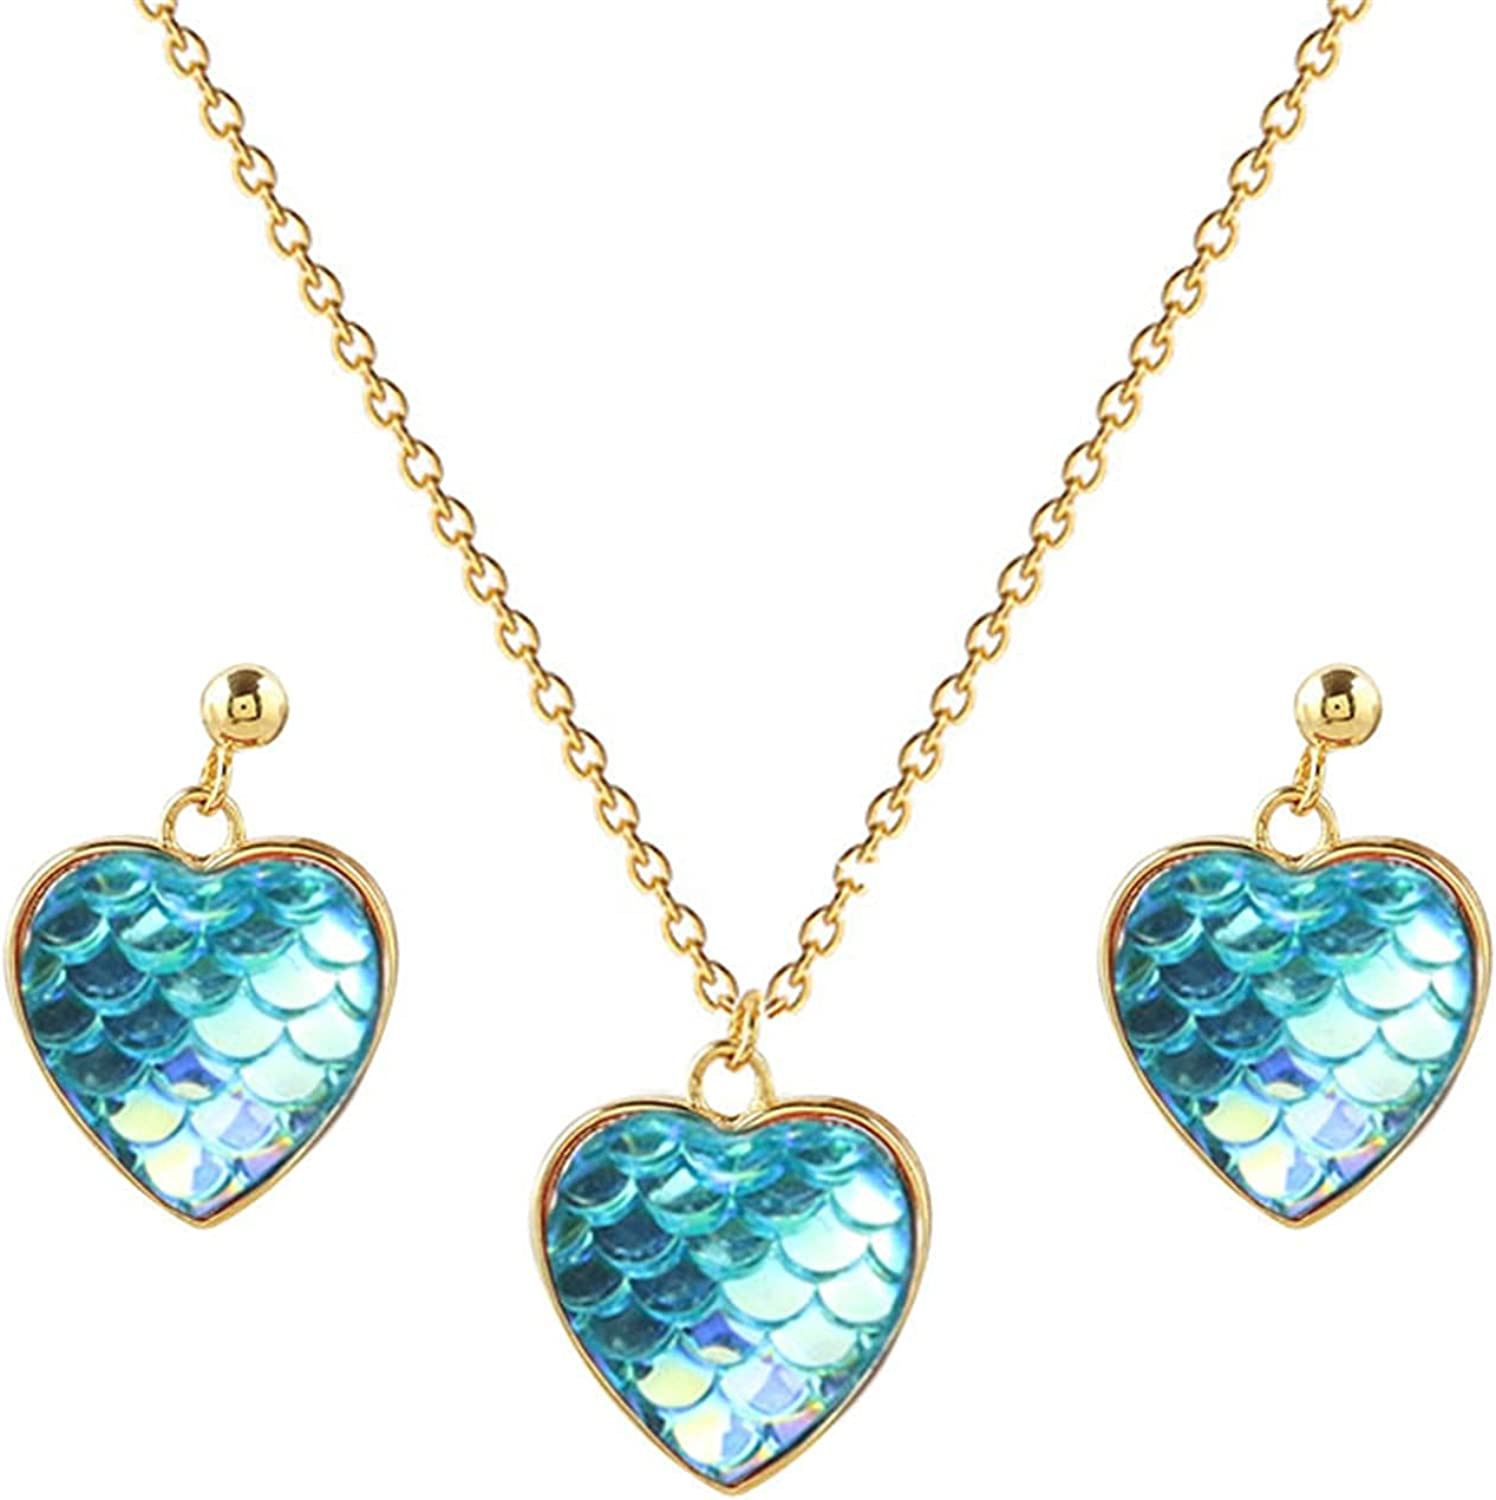 coadipress Mermaid Fish Scale Skin Sequin Necklace and Earrings Set for Women Girl Rainbow Color Changing Iridescent Shiny Charm Colorful Heart Earrings Jewelry Gift